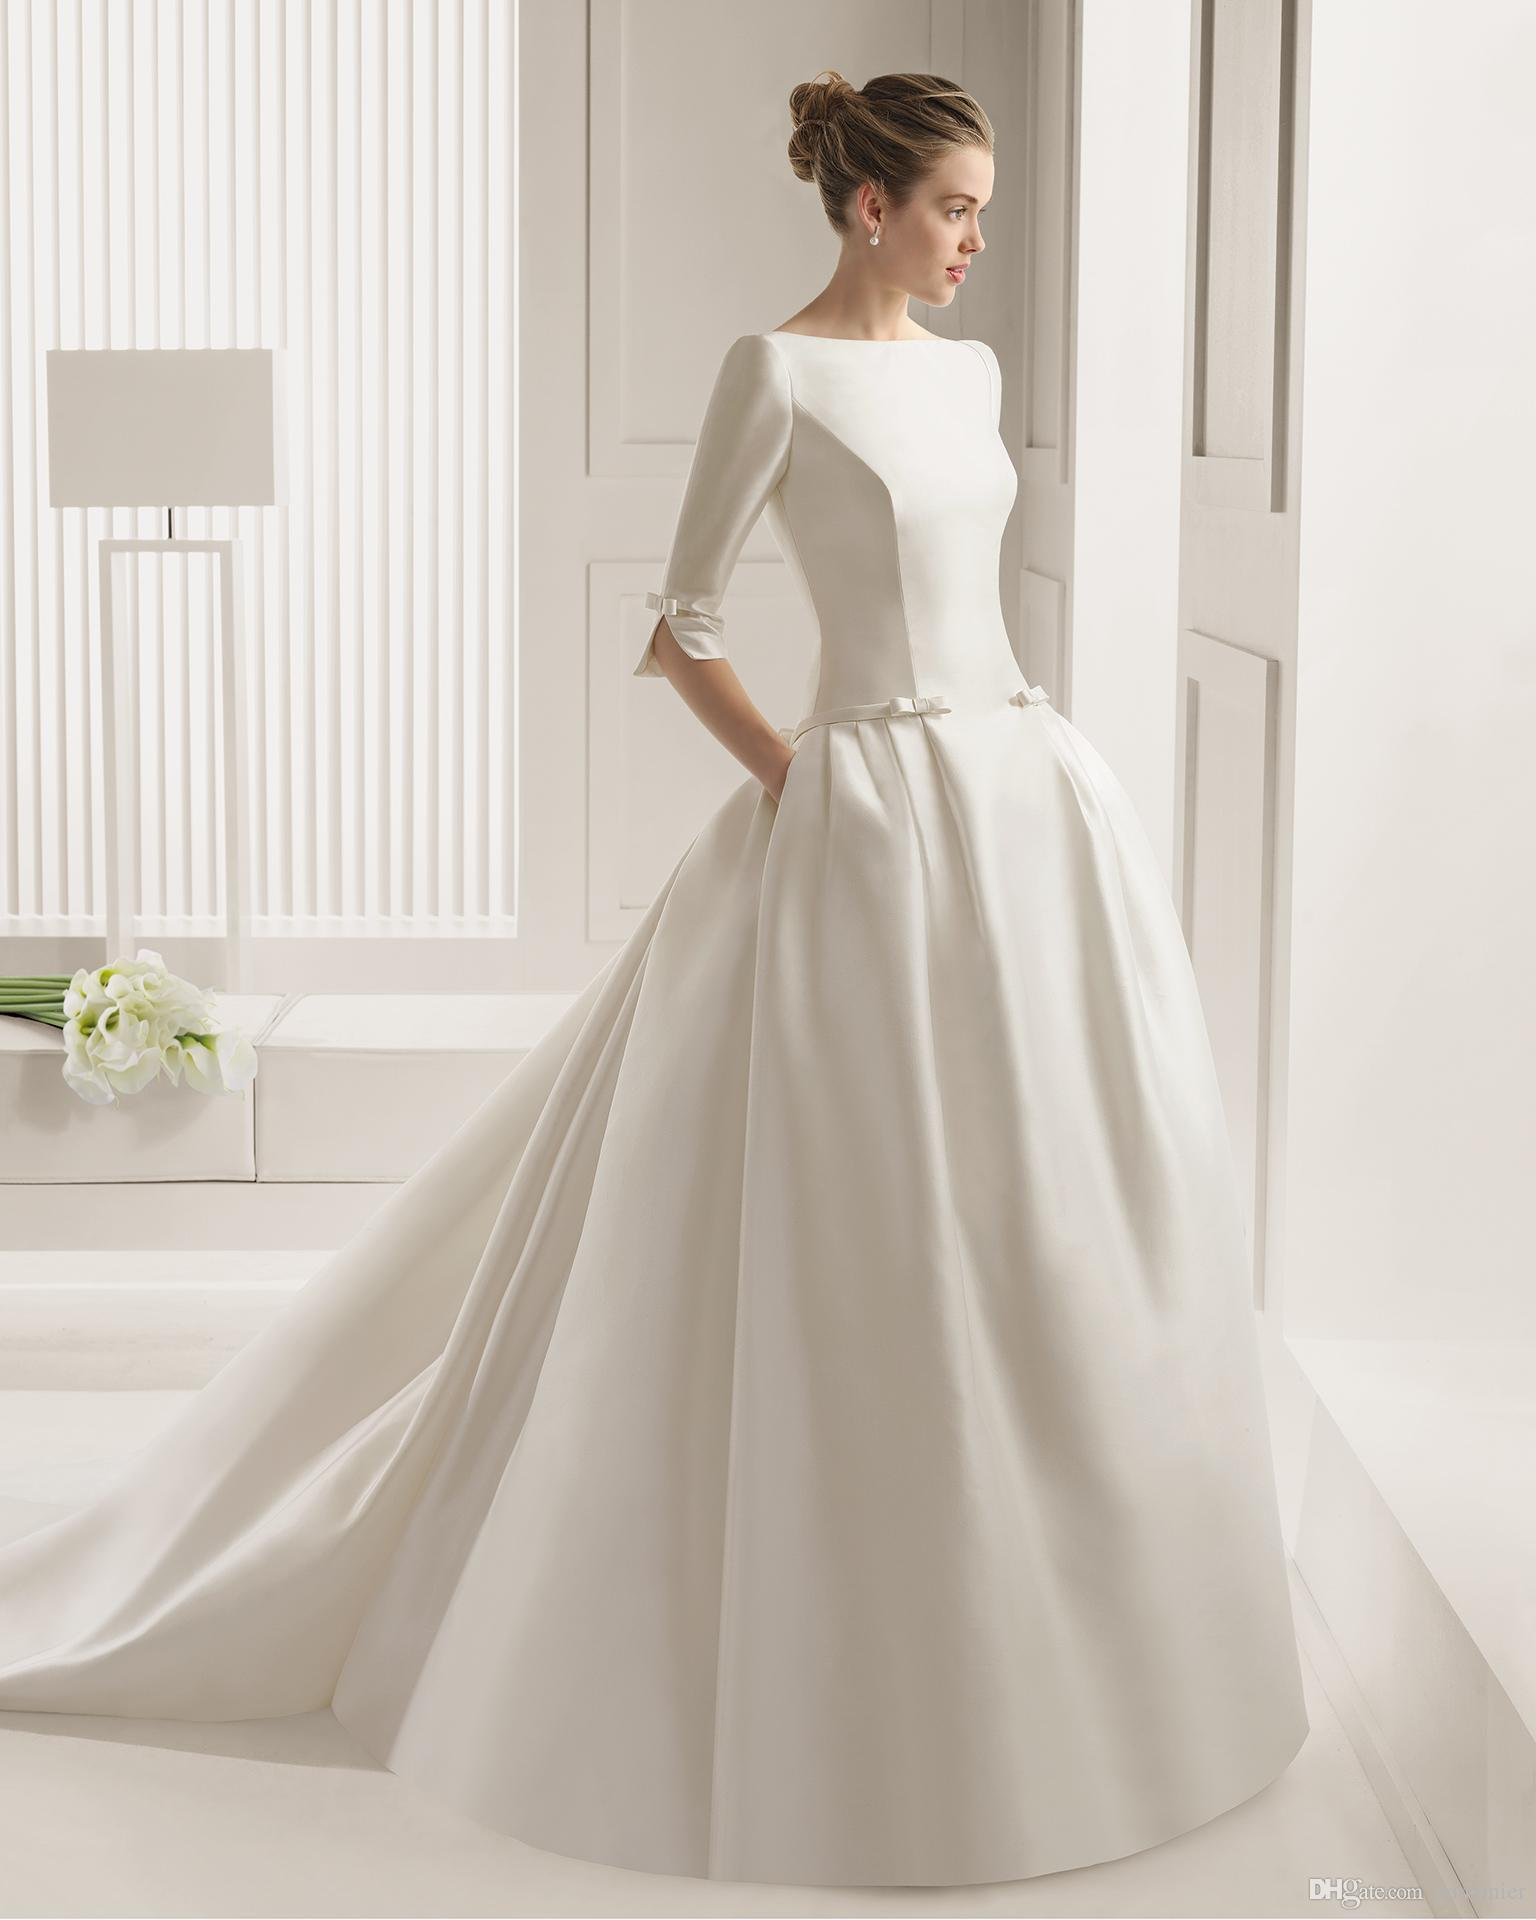 2017 Spring Chic White Backless Ball Gown Wedding Dresses Bateau ...